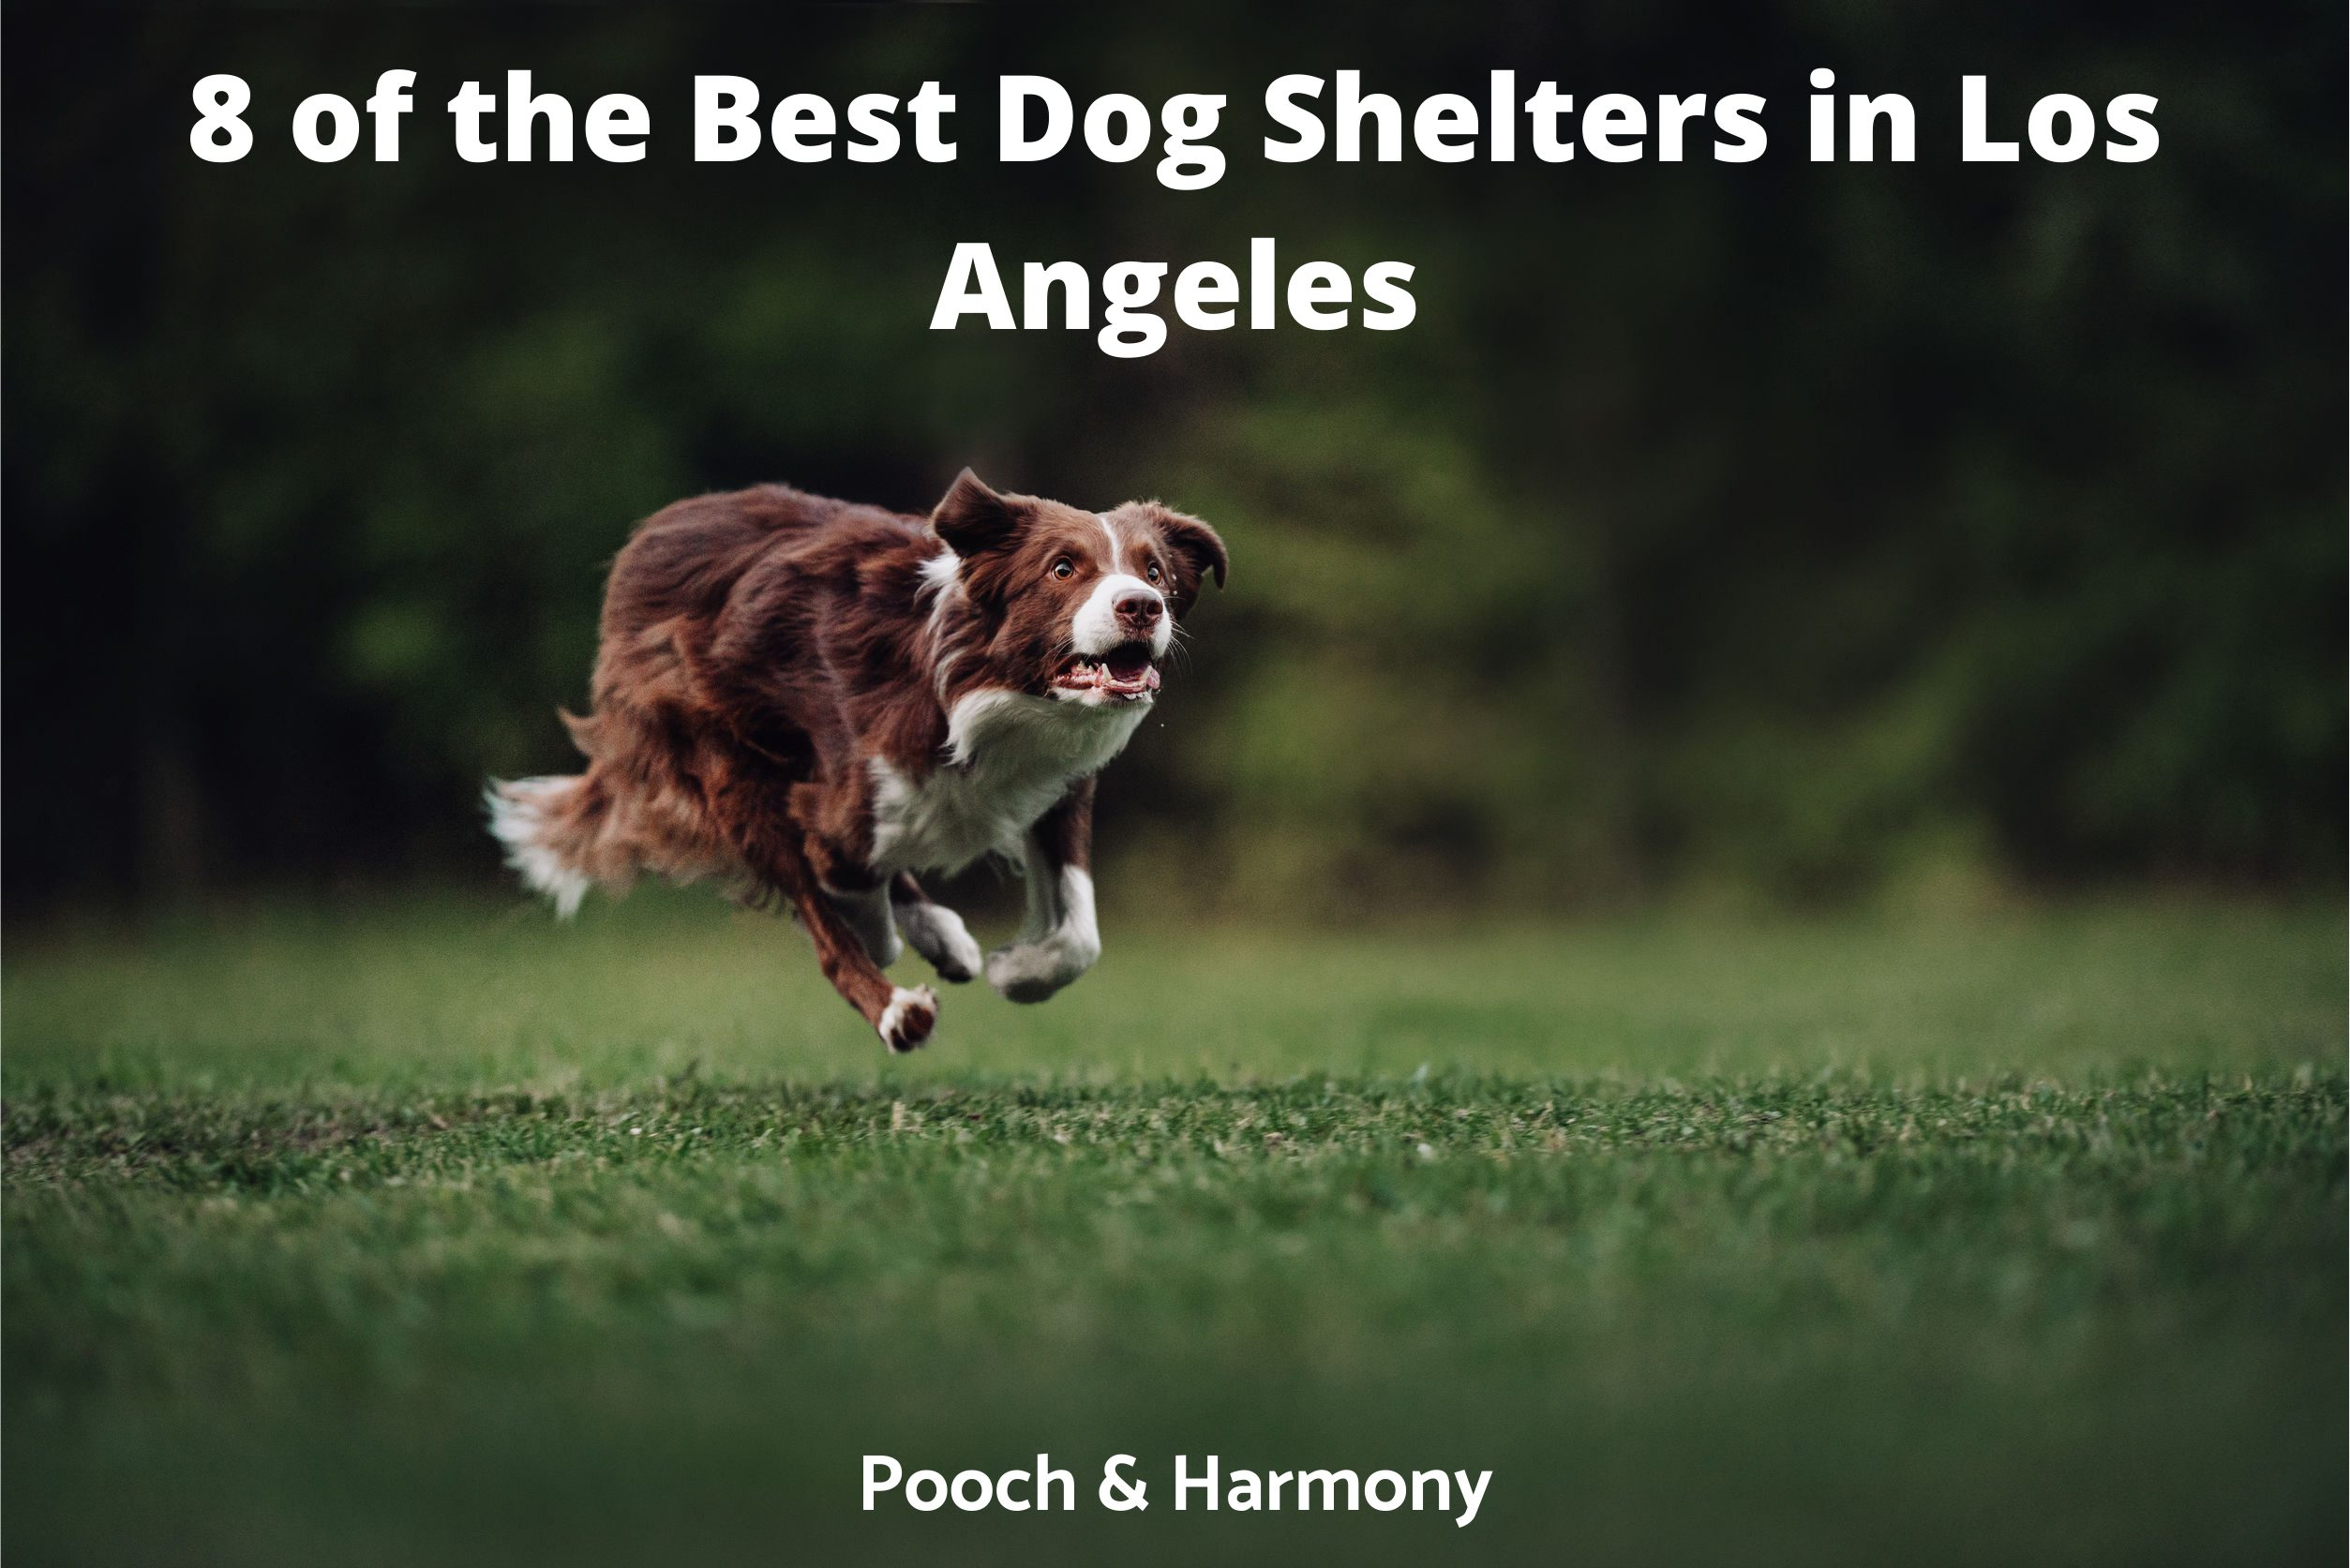 Best Dog Shelters in Los Angeles